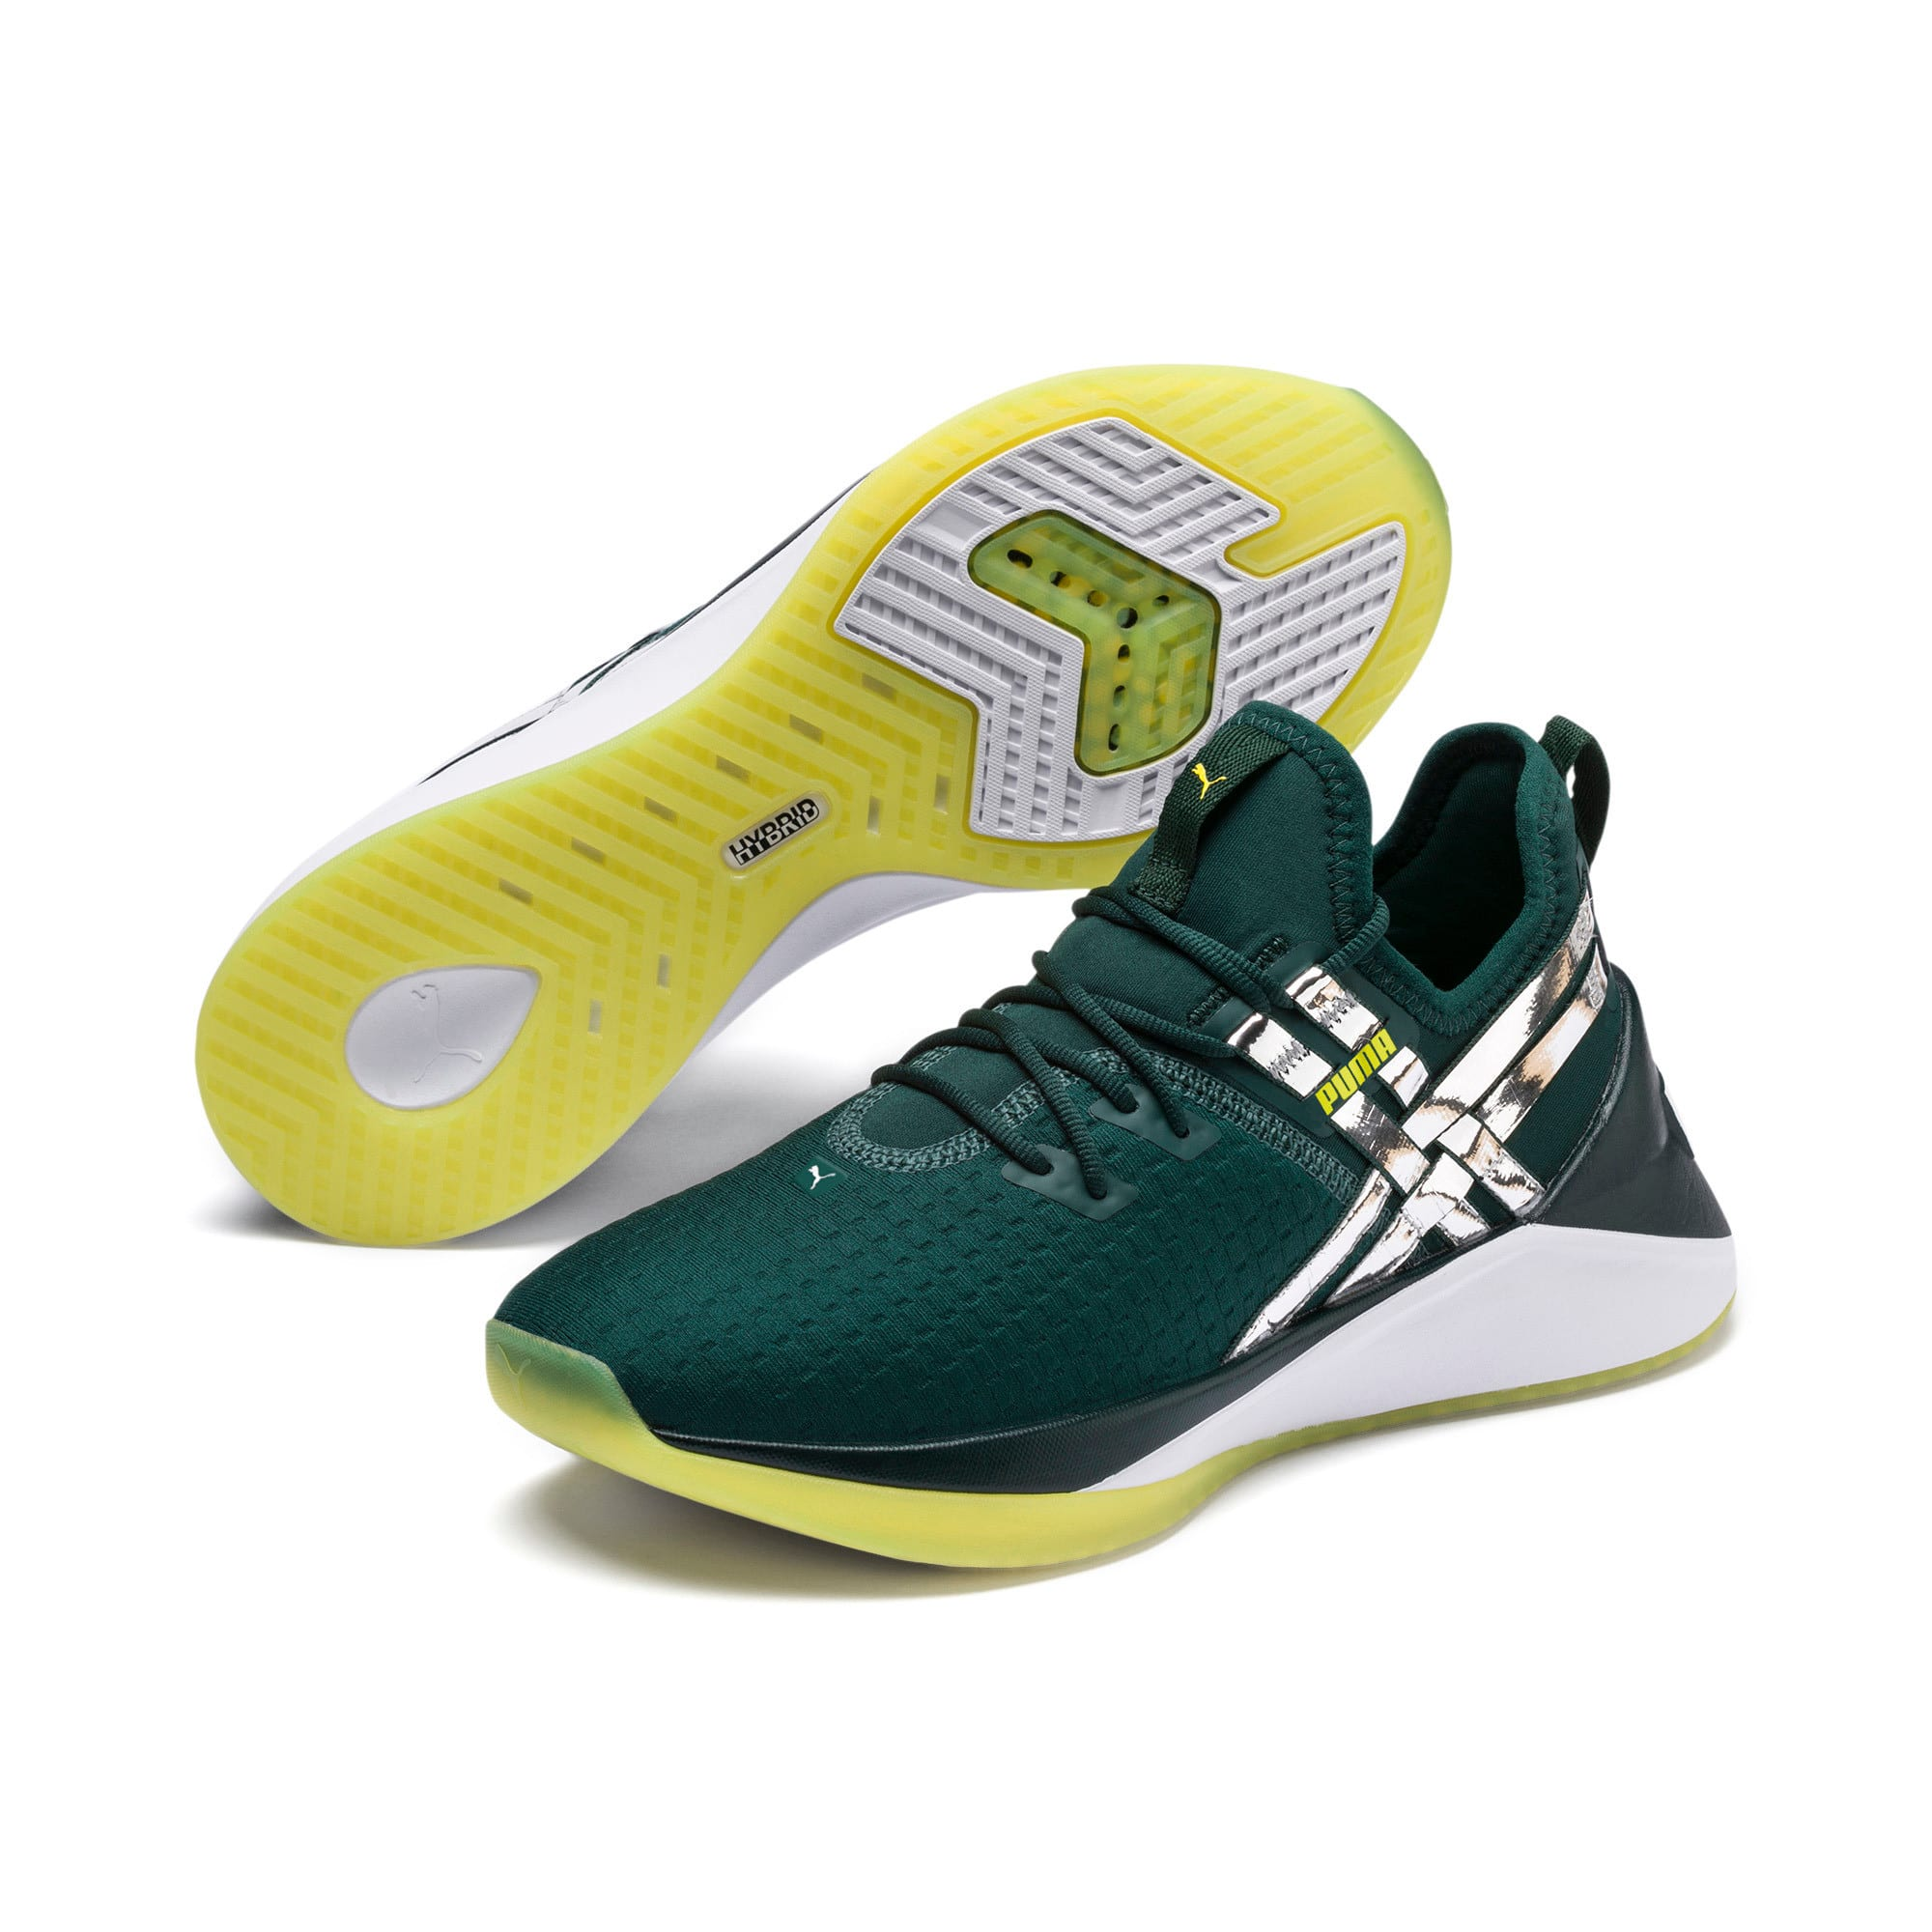 Thumbnail 2 of Jaab XT Trailblazer Women's Training Shoes, Ponderosa Pine-Puma White, medium